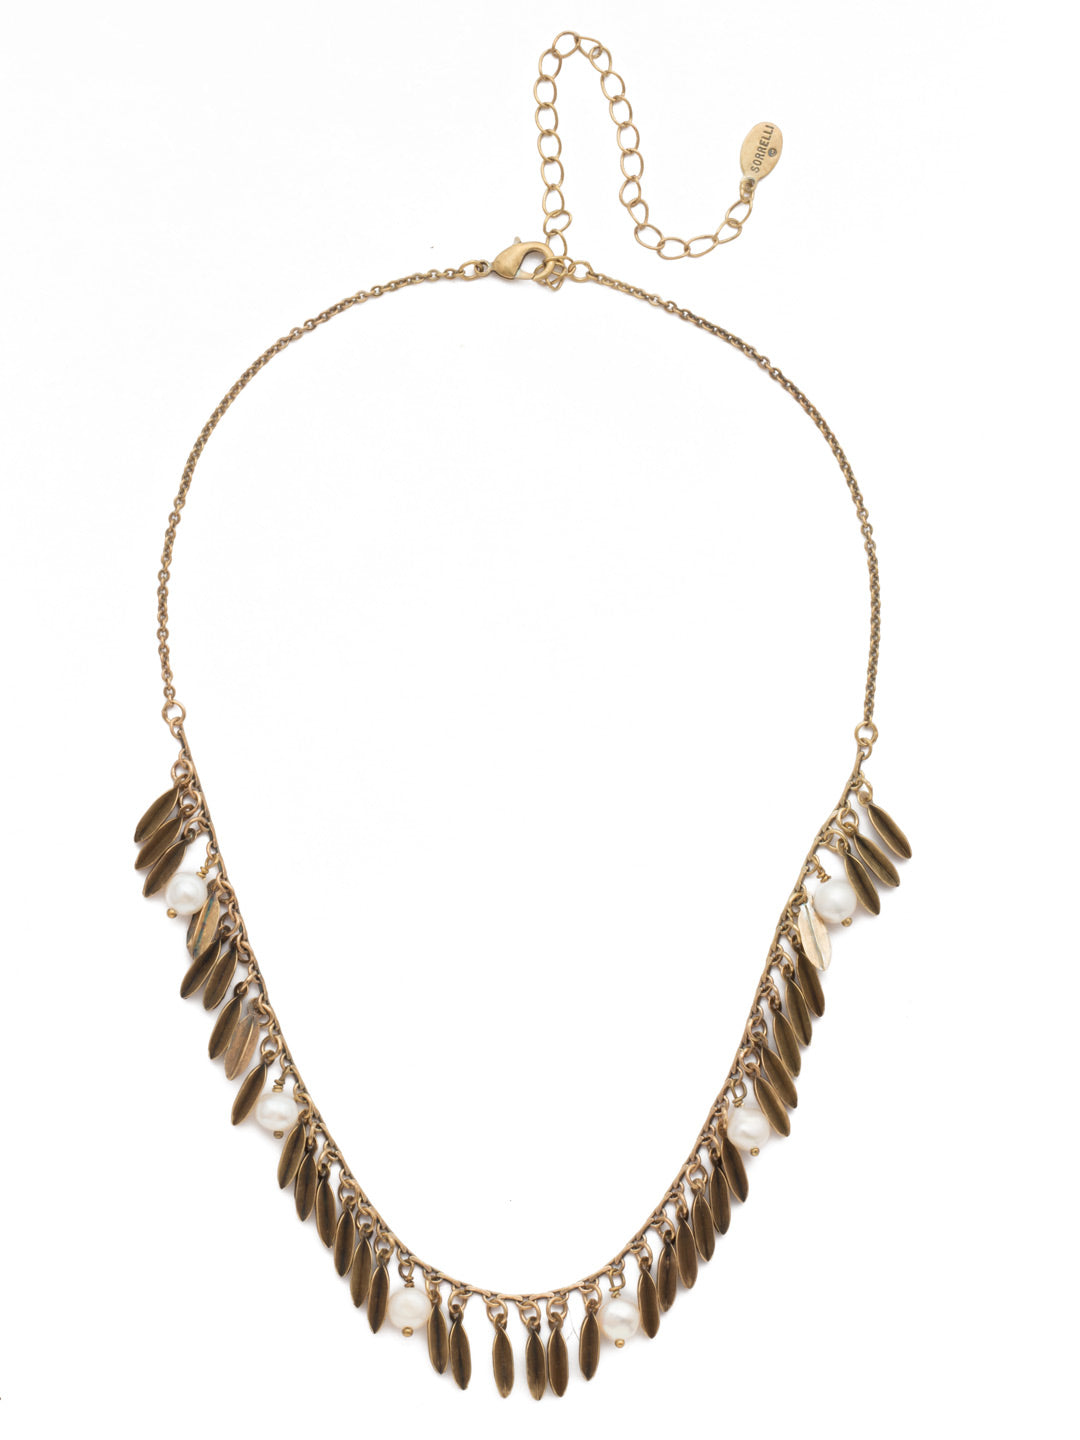 Twyla Tennis Necklace - 4NES8AGMDP